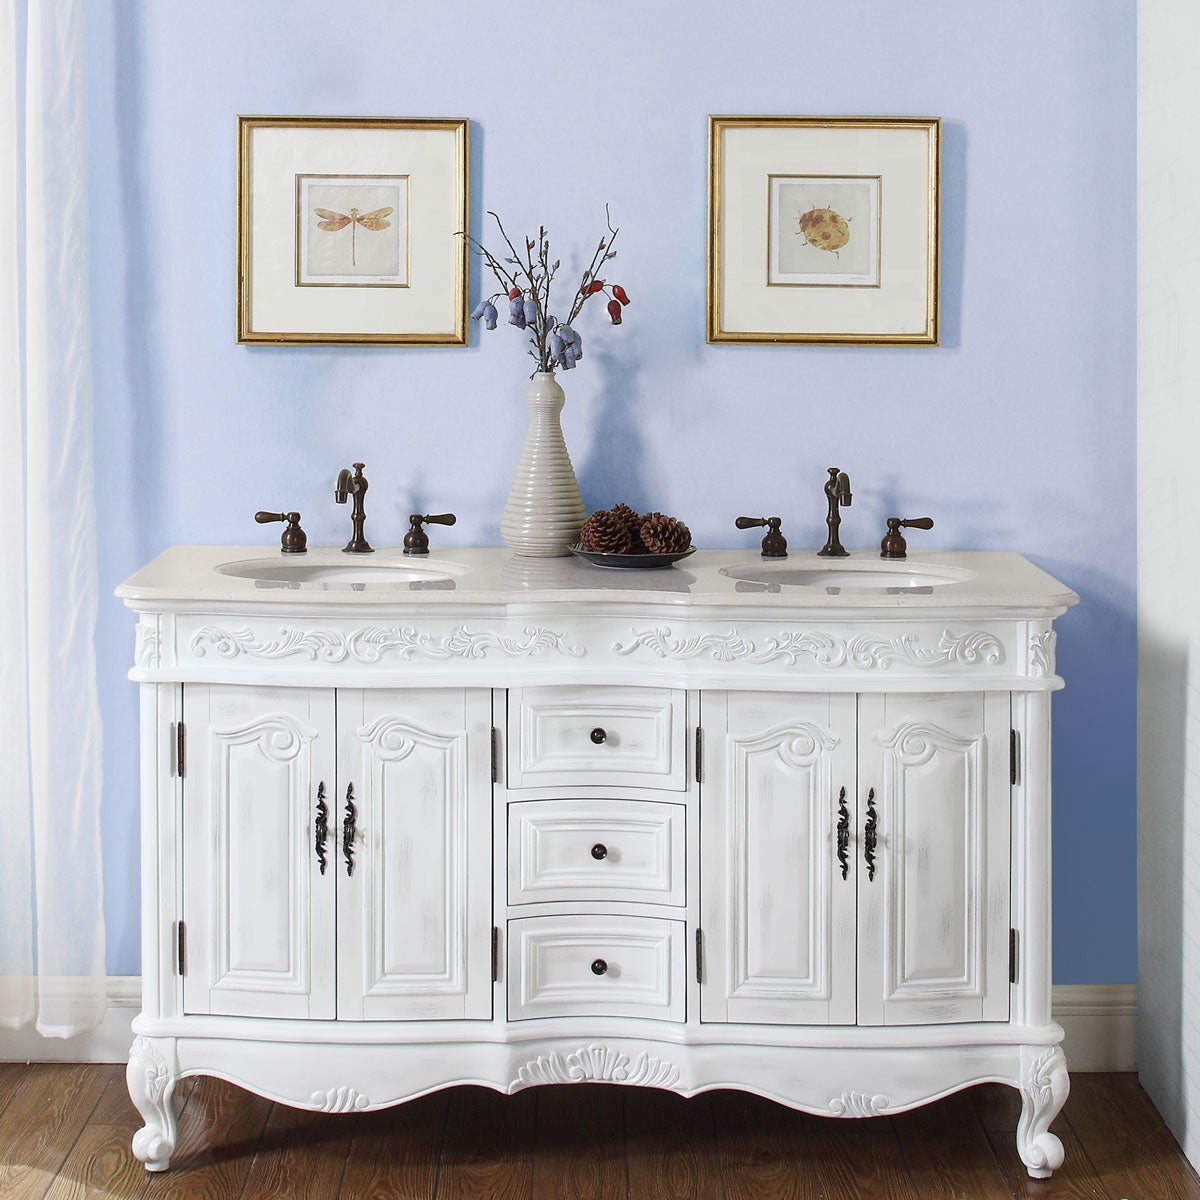 Shop For Silkroad Exclusive Stone Top 58 Inch Double Sink Bathroom Vanity Get Free Delivery On Everything At Overstock Your Online Furniture Outlet Store Get 5 In Rewards With Club O 6657590